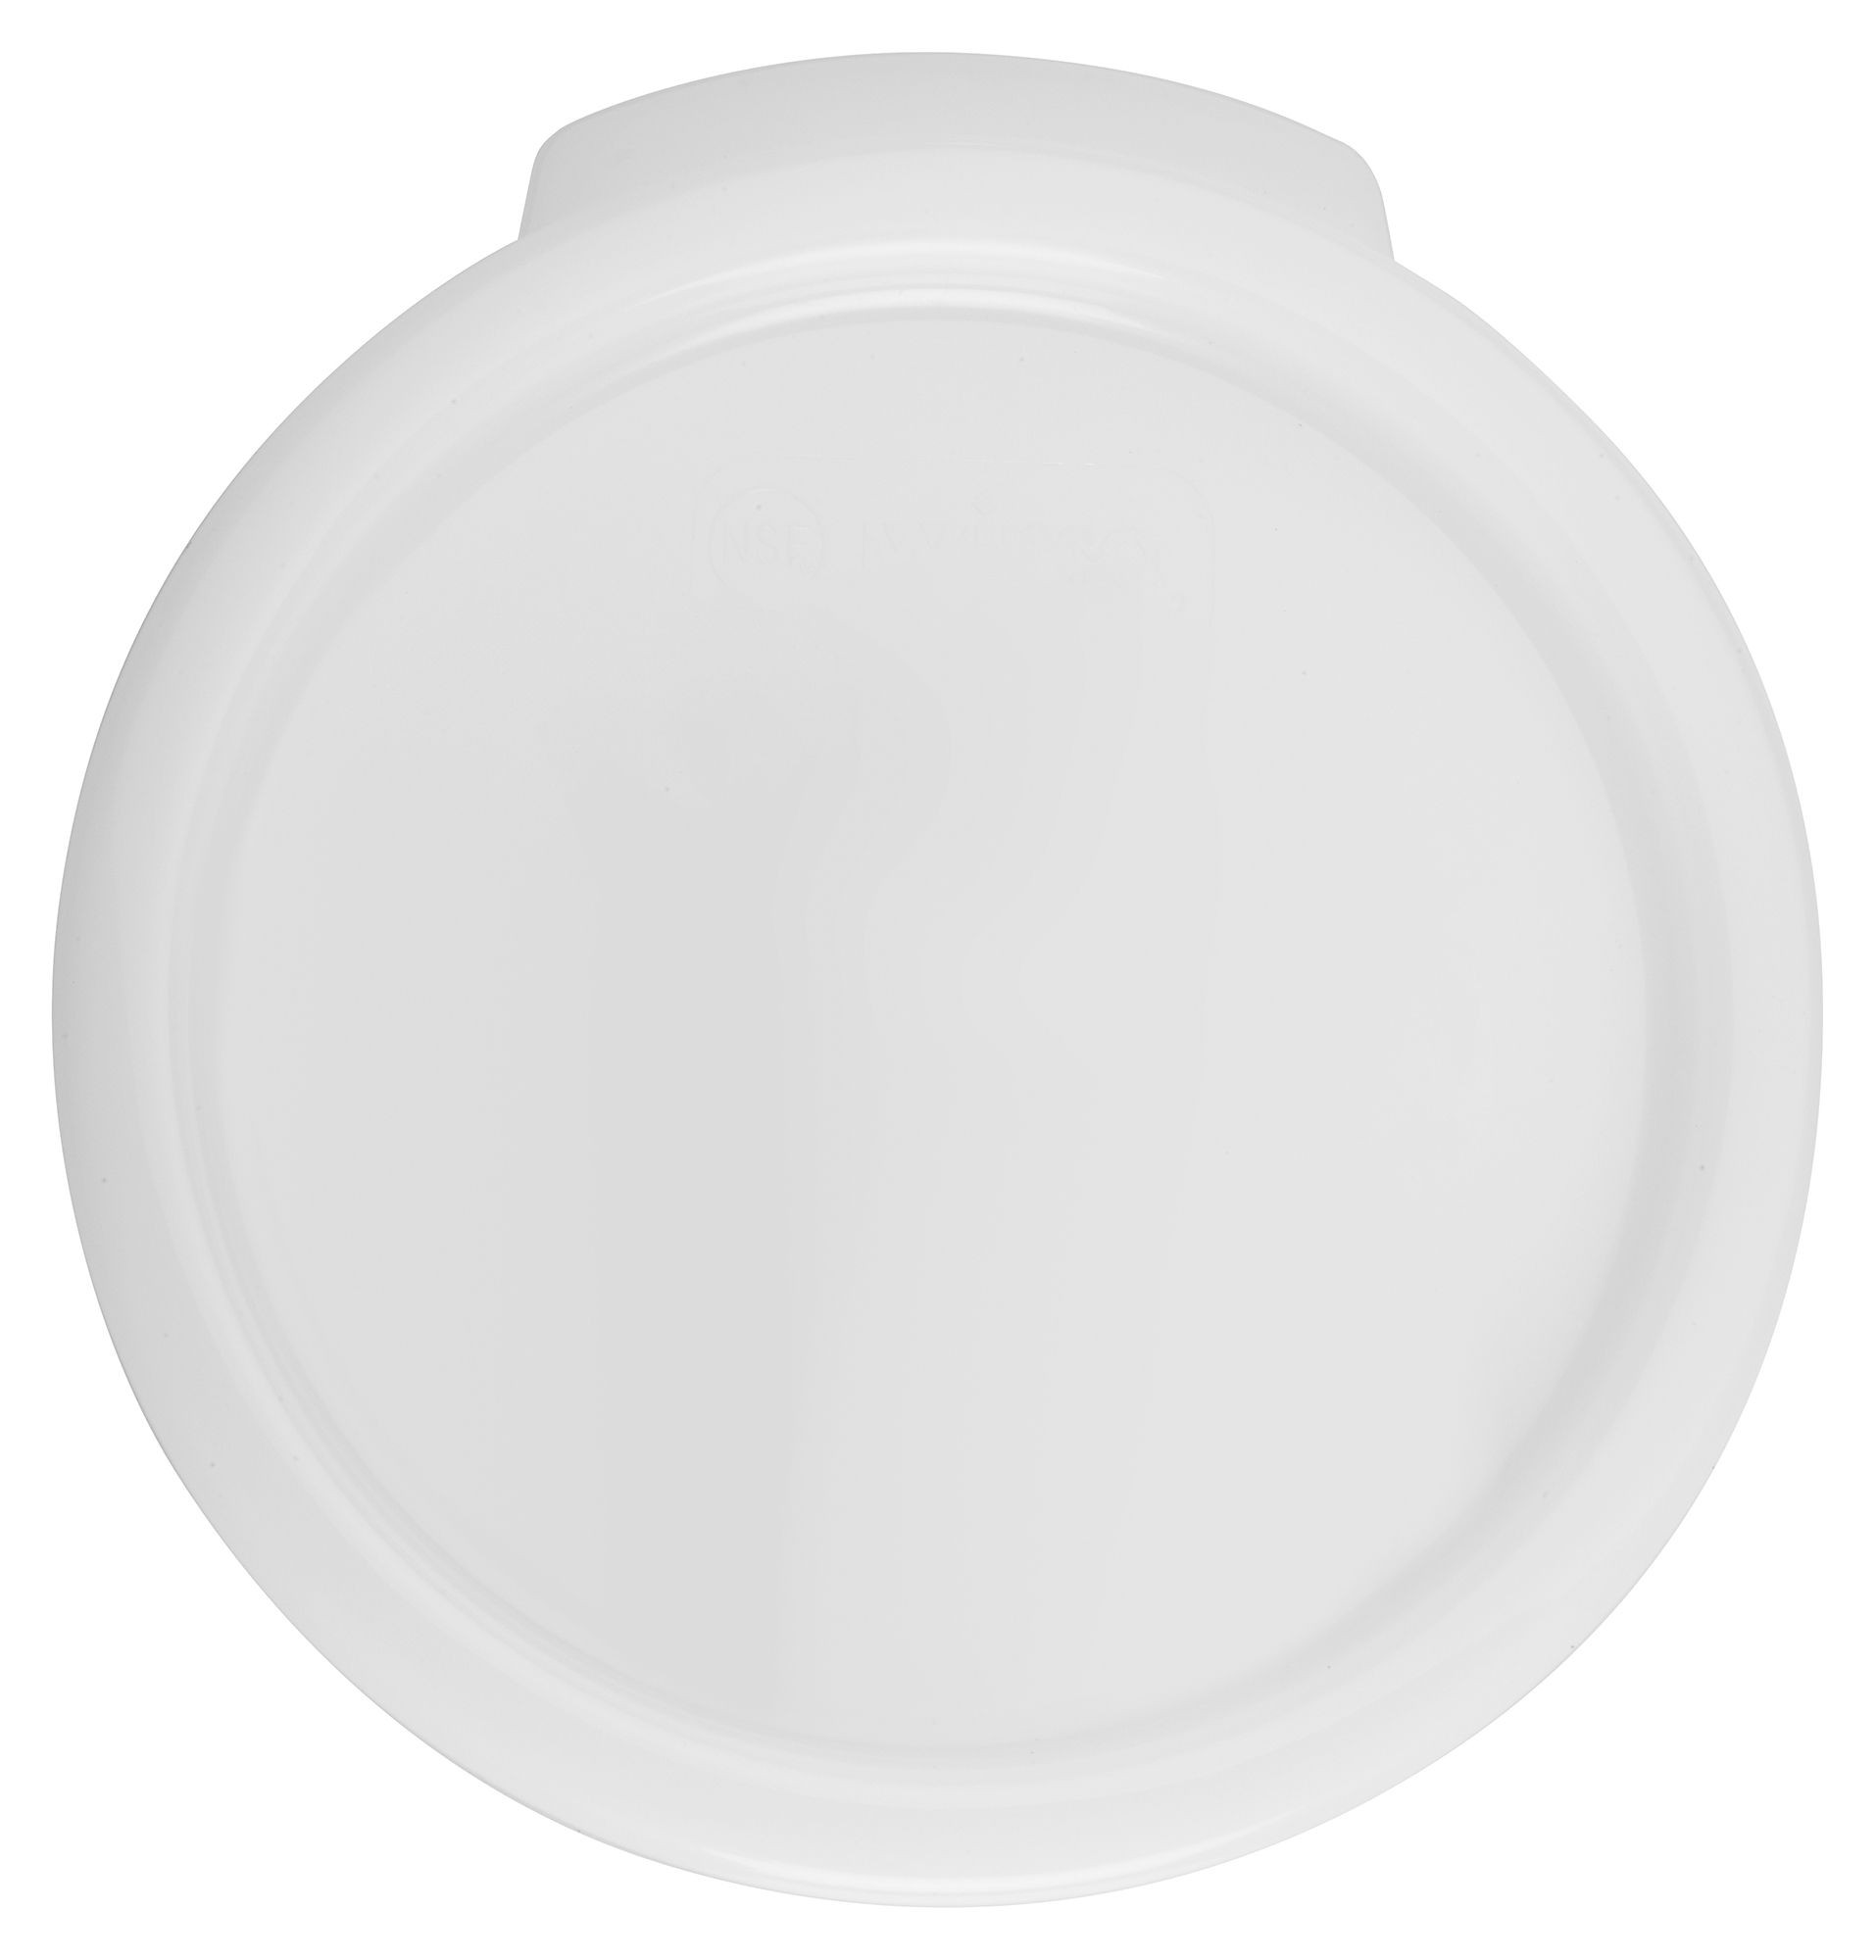 PP Round Cover, Fits 2 & 4Qt